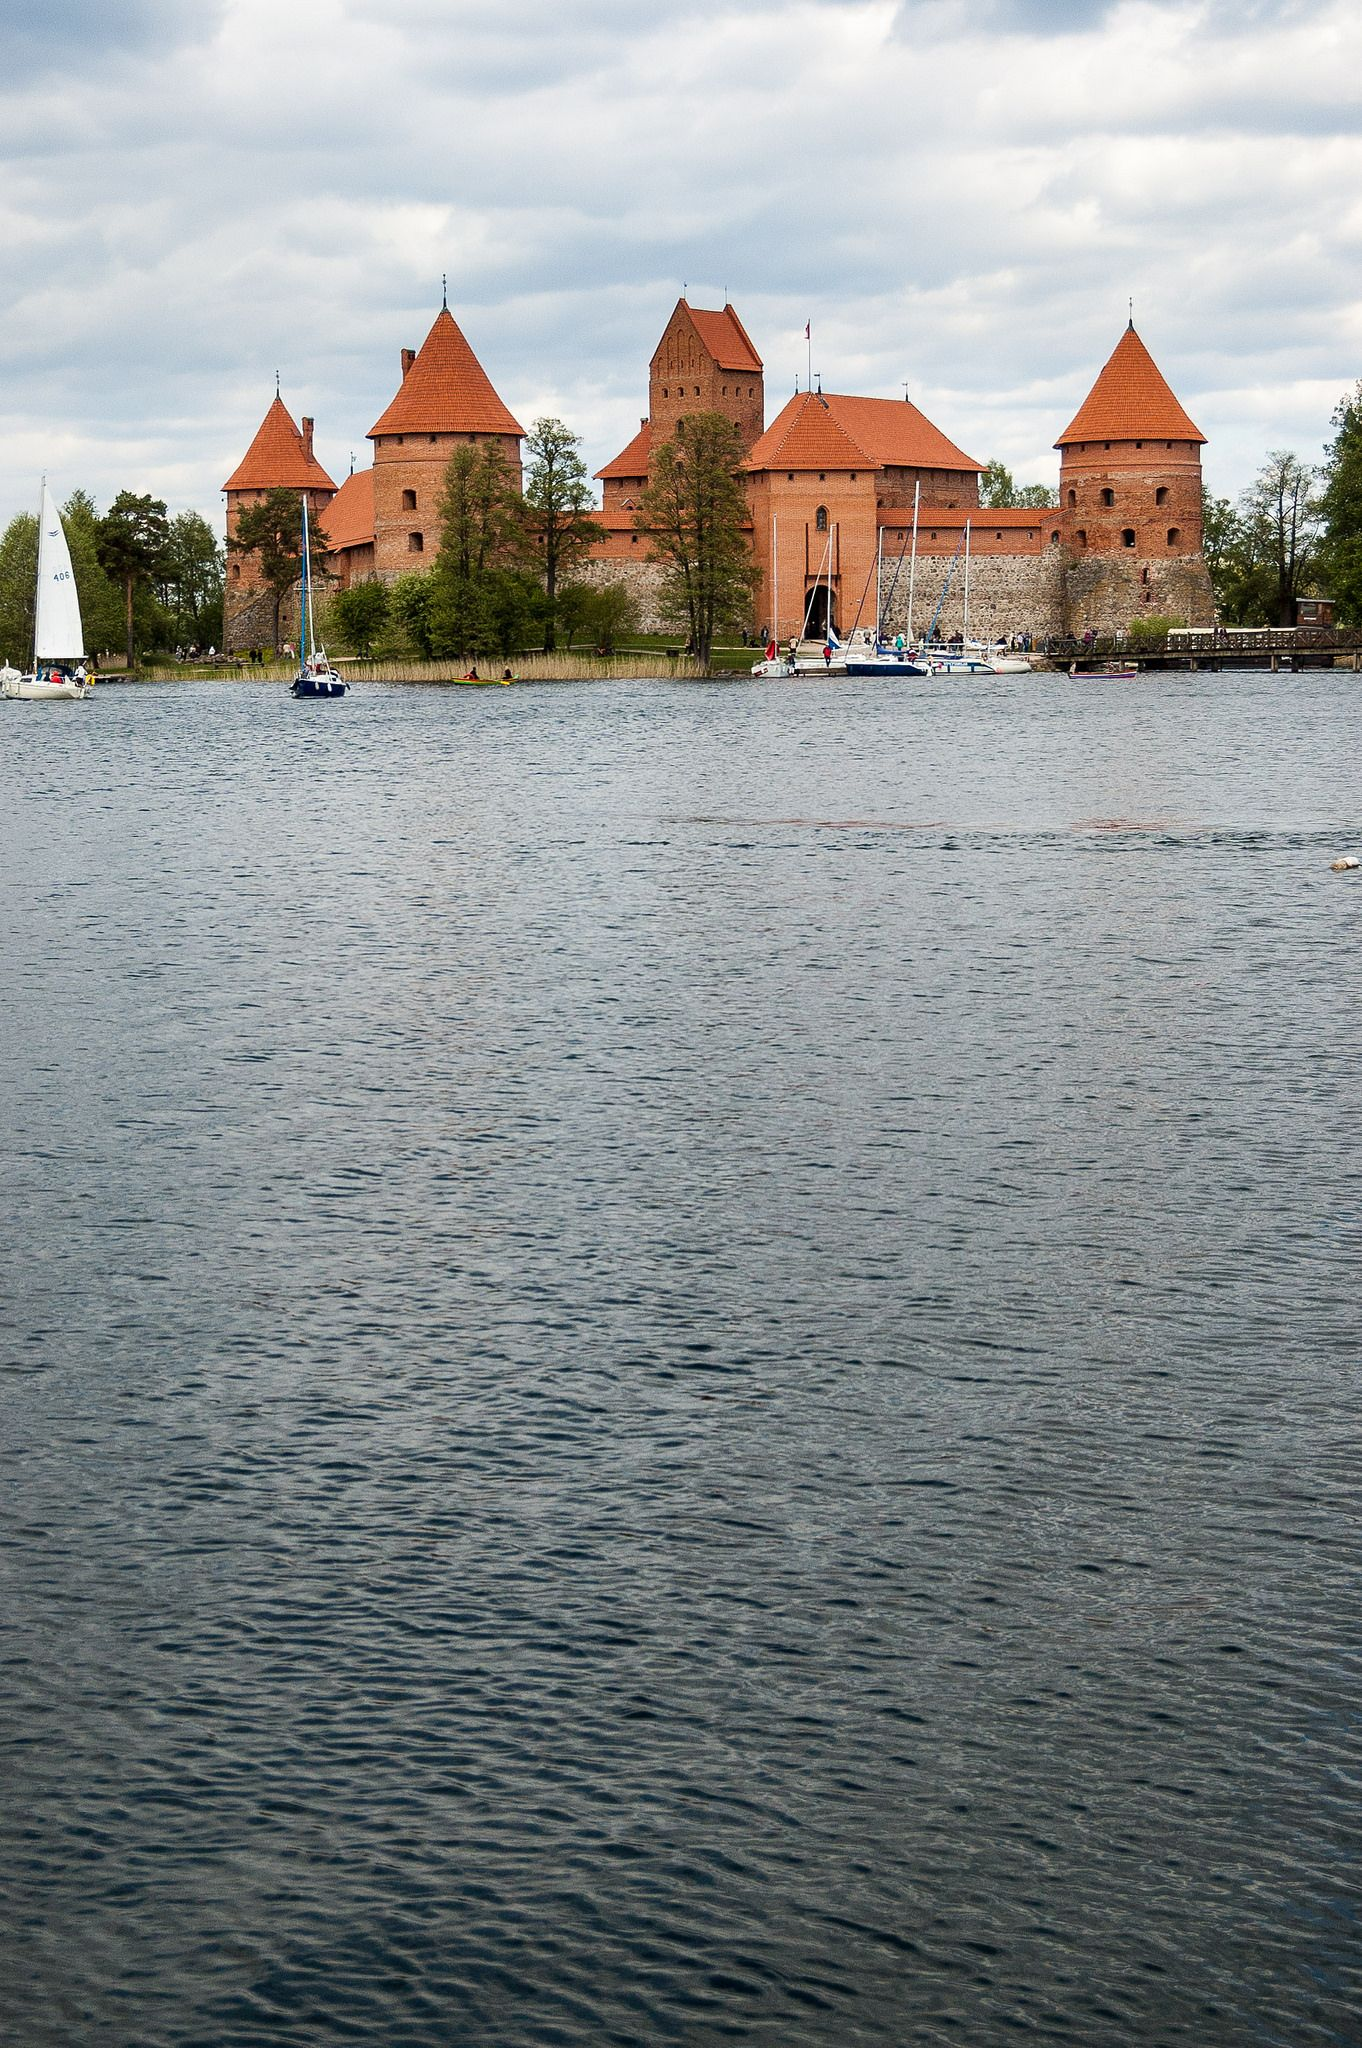 https://flic.kr/p/nsB9Q7 | Baltic Trip of Raccoon Pedro | Lithuania | Trakai Island Castle | Baltic Trip 2014. Photo by World Wide Gifts (www.world-wide-gifts.com). See more about Raccoon Pedro's travelling at instagram.com/worldwide_souvenirs/